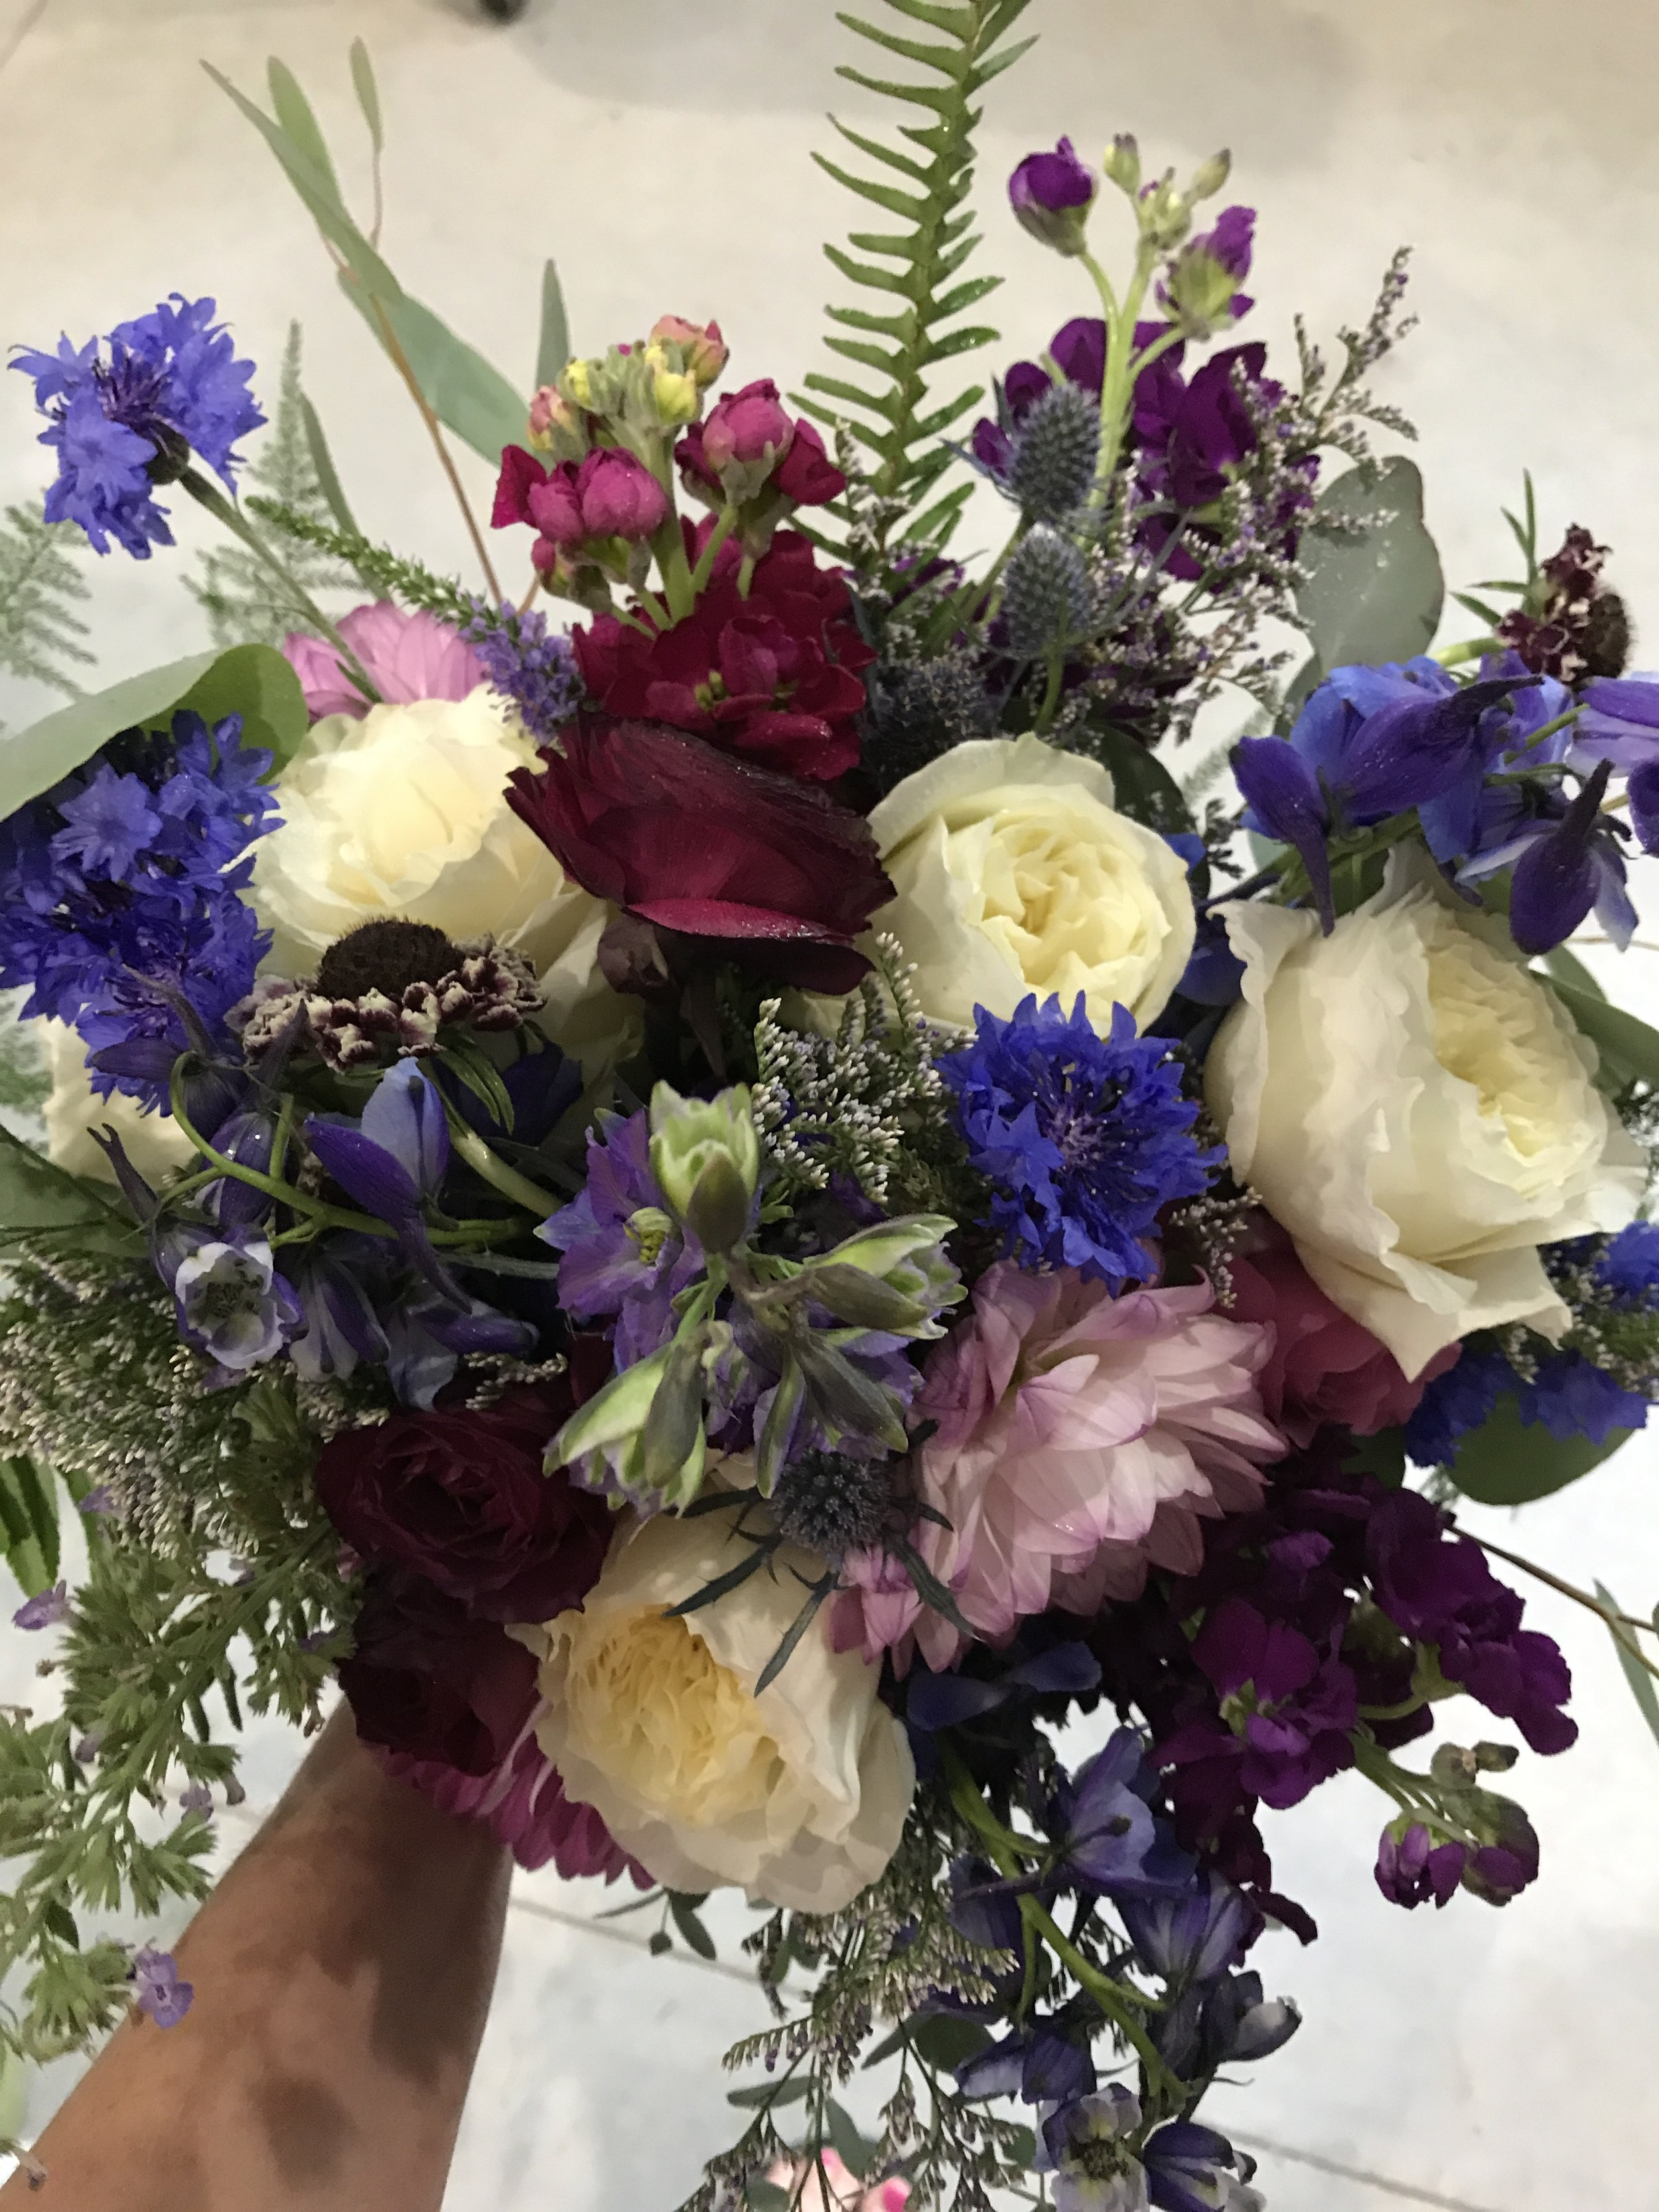 Summer Purples with ivory garden roses